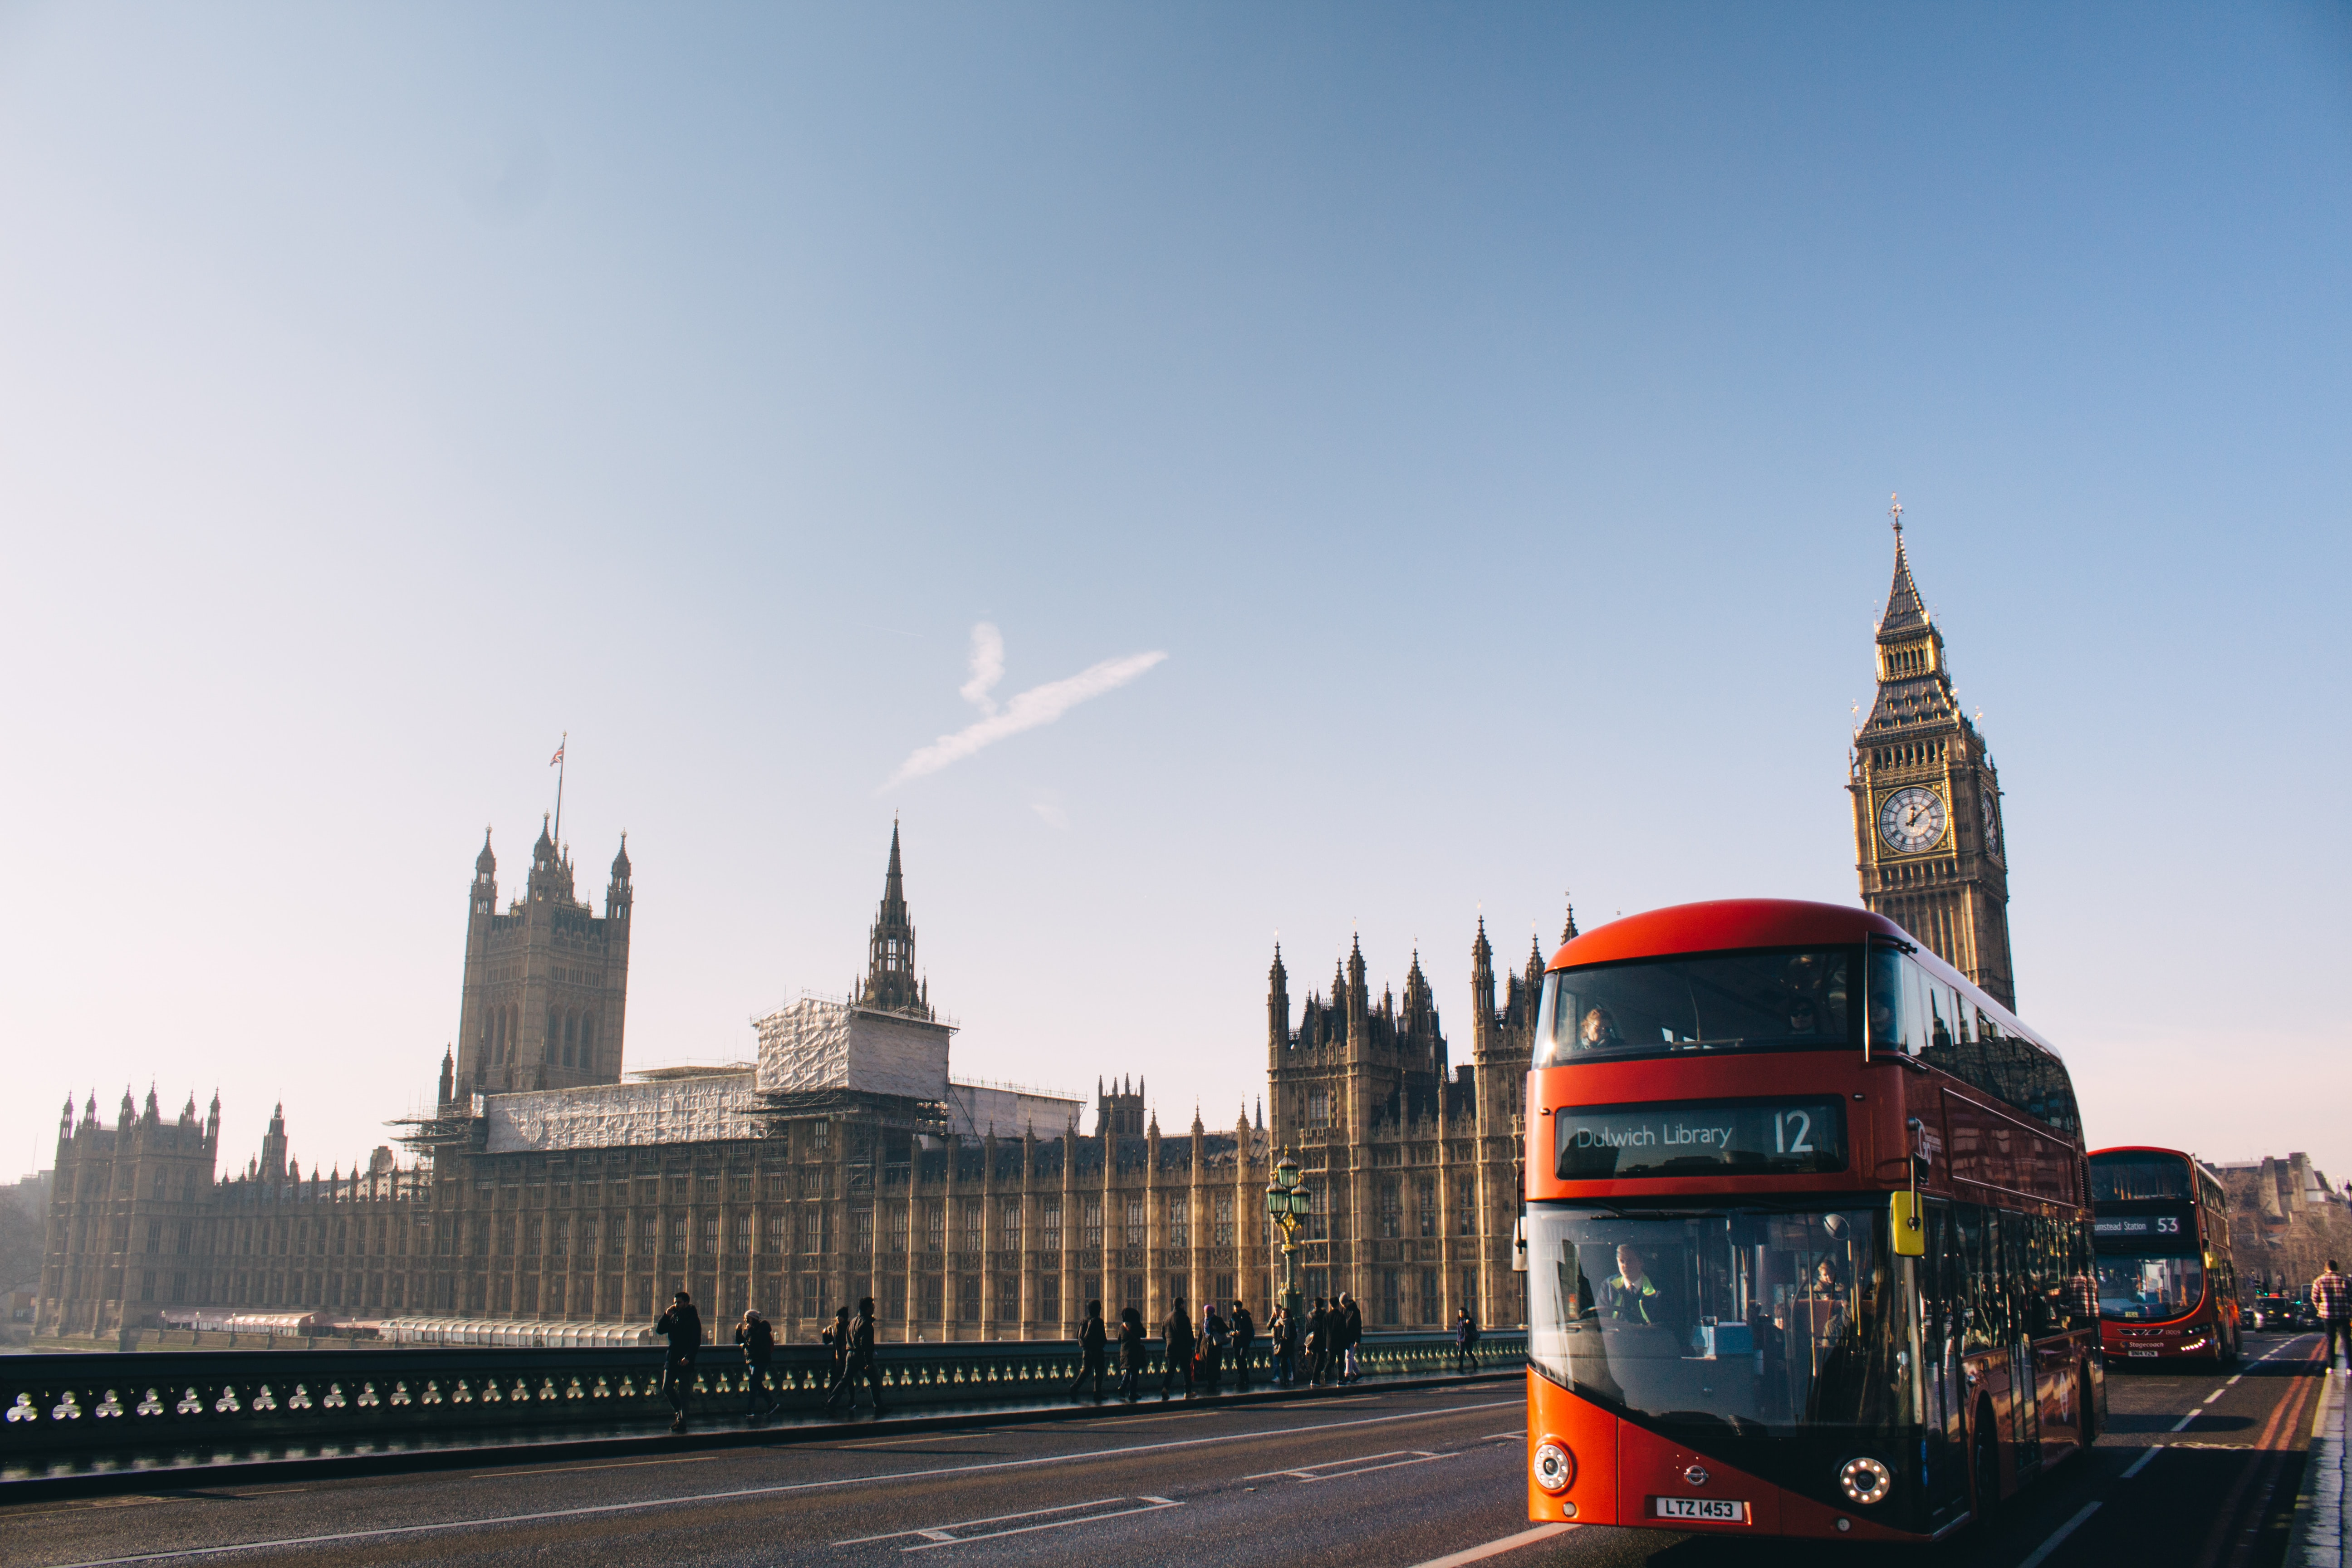 Red double-decker buses on a bridge in London with a view on Westminster